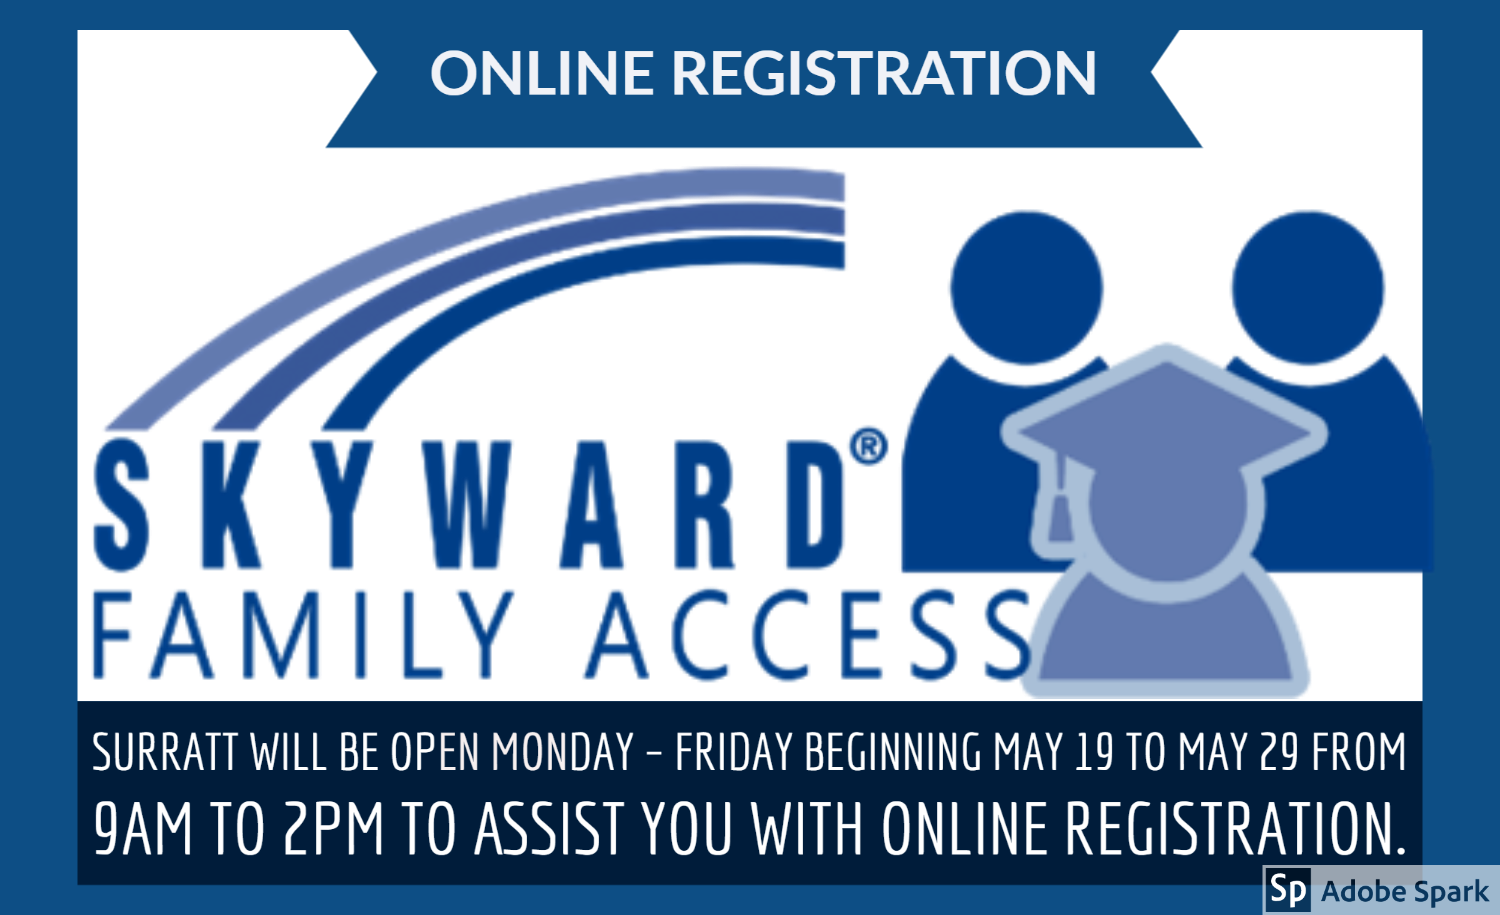 Image of WDS Skyward Online Registration Assistance